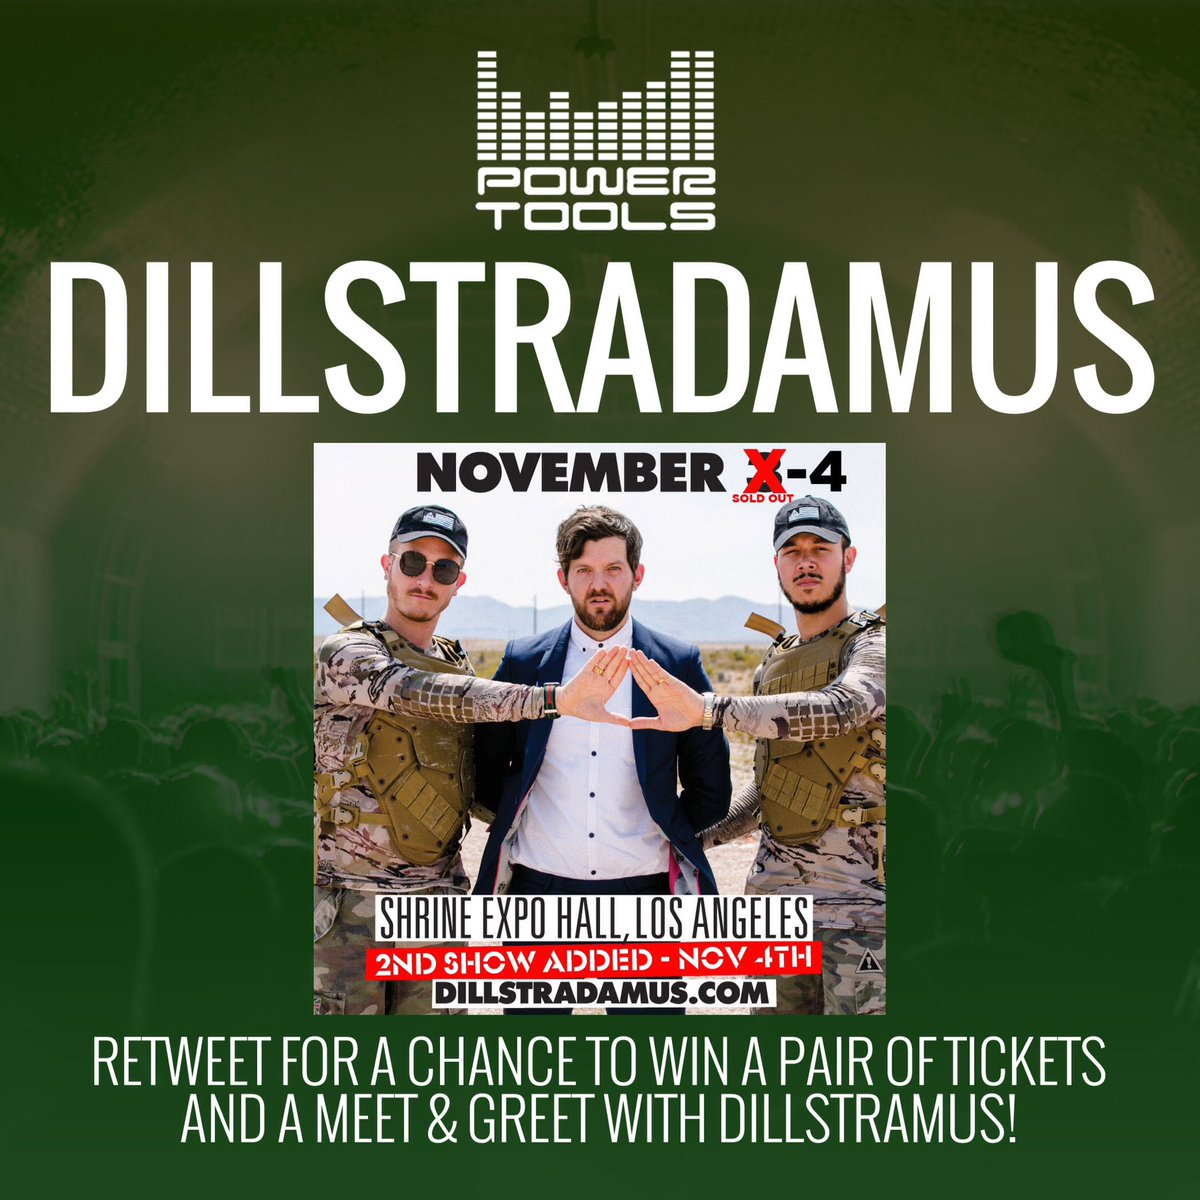 We have tickets to see @DILLONFRANCIS @FLOSSTRADAMUS! Retweet & follow us for a chance to win a pair of tickets! https://t.co/h0QxpPsrEi